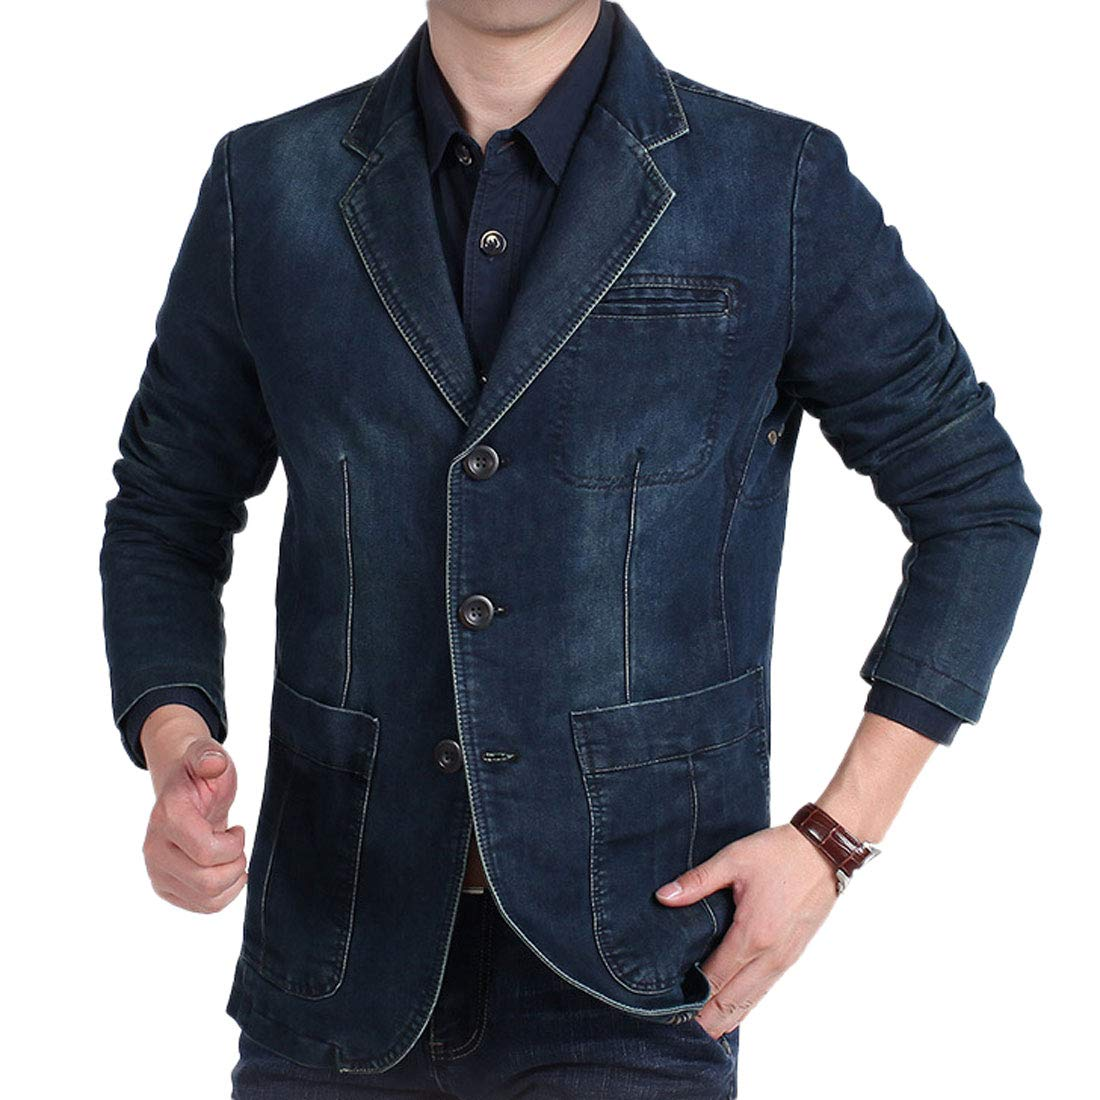 Chartou Mens Casual Notched Collar 3 Button Slim Corduroy-Twill Blazer Jacket